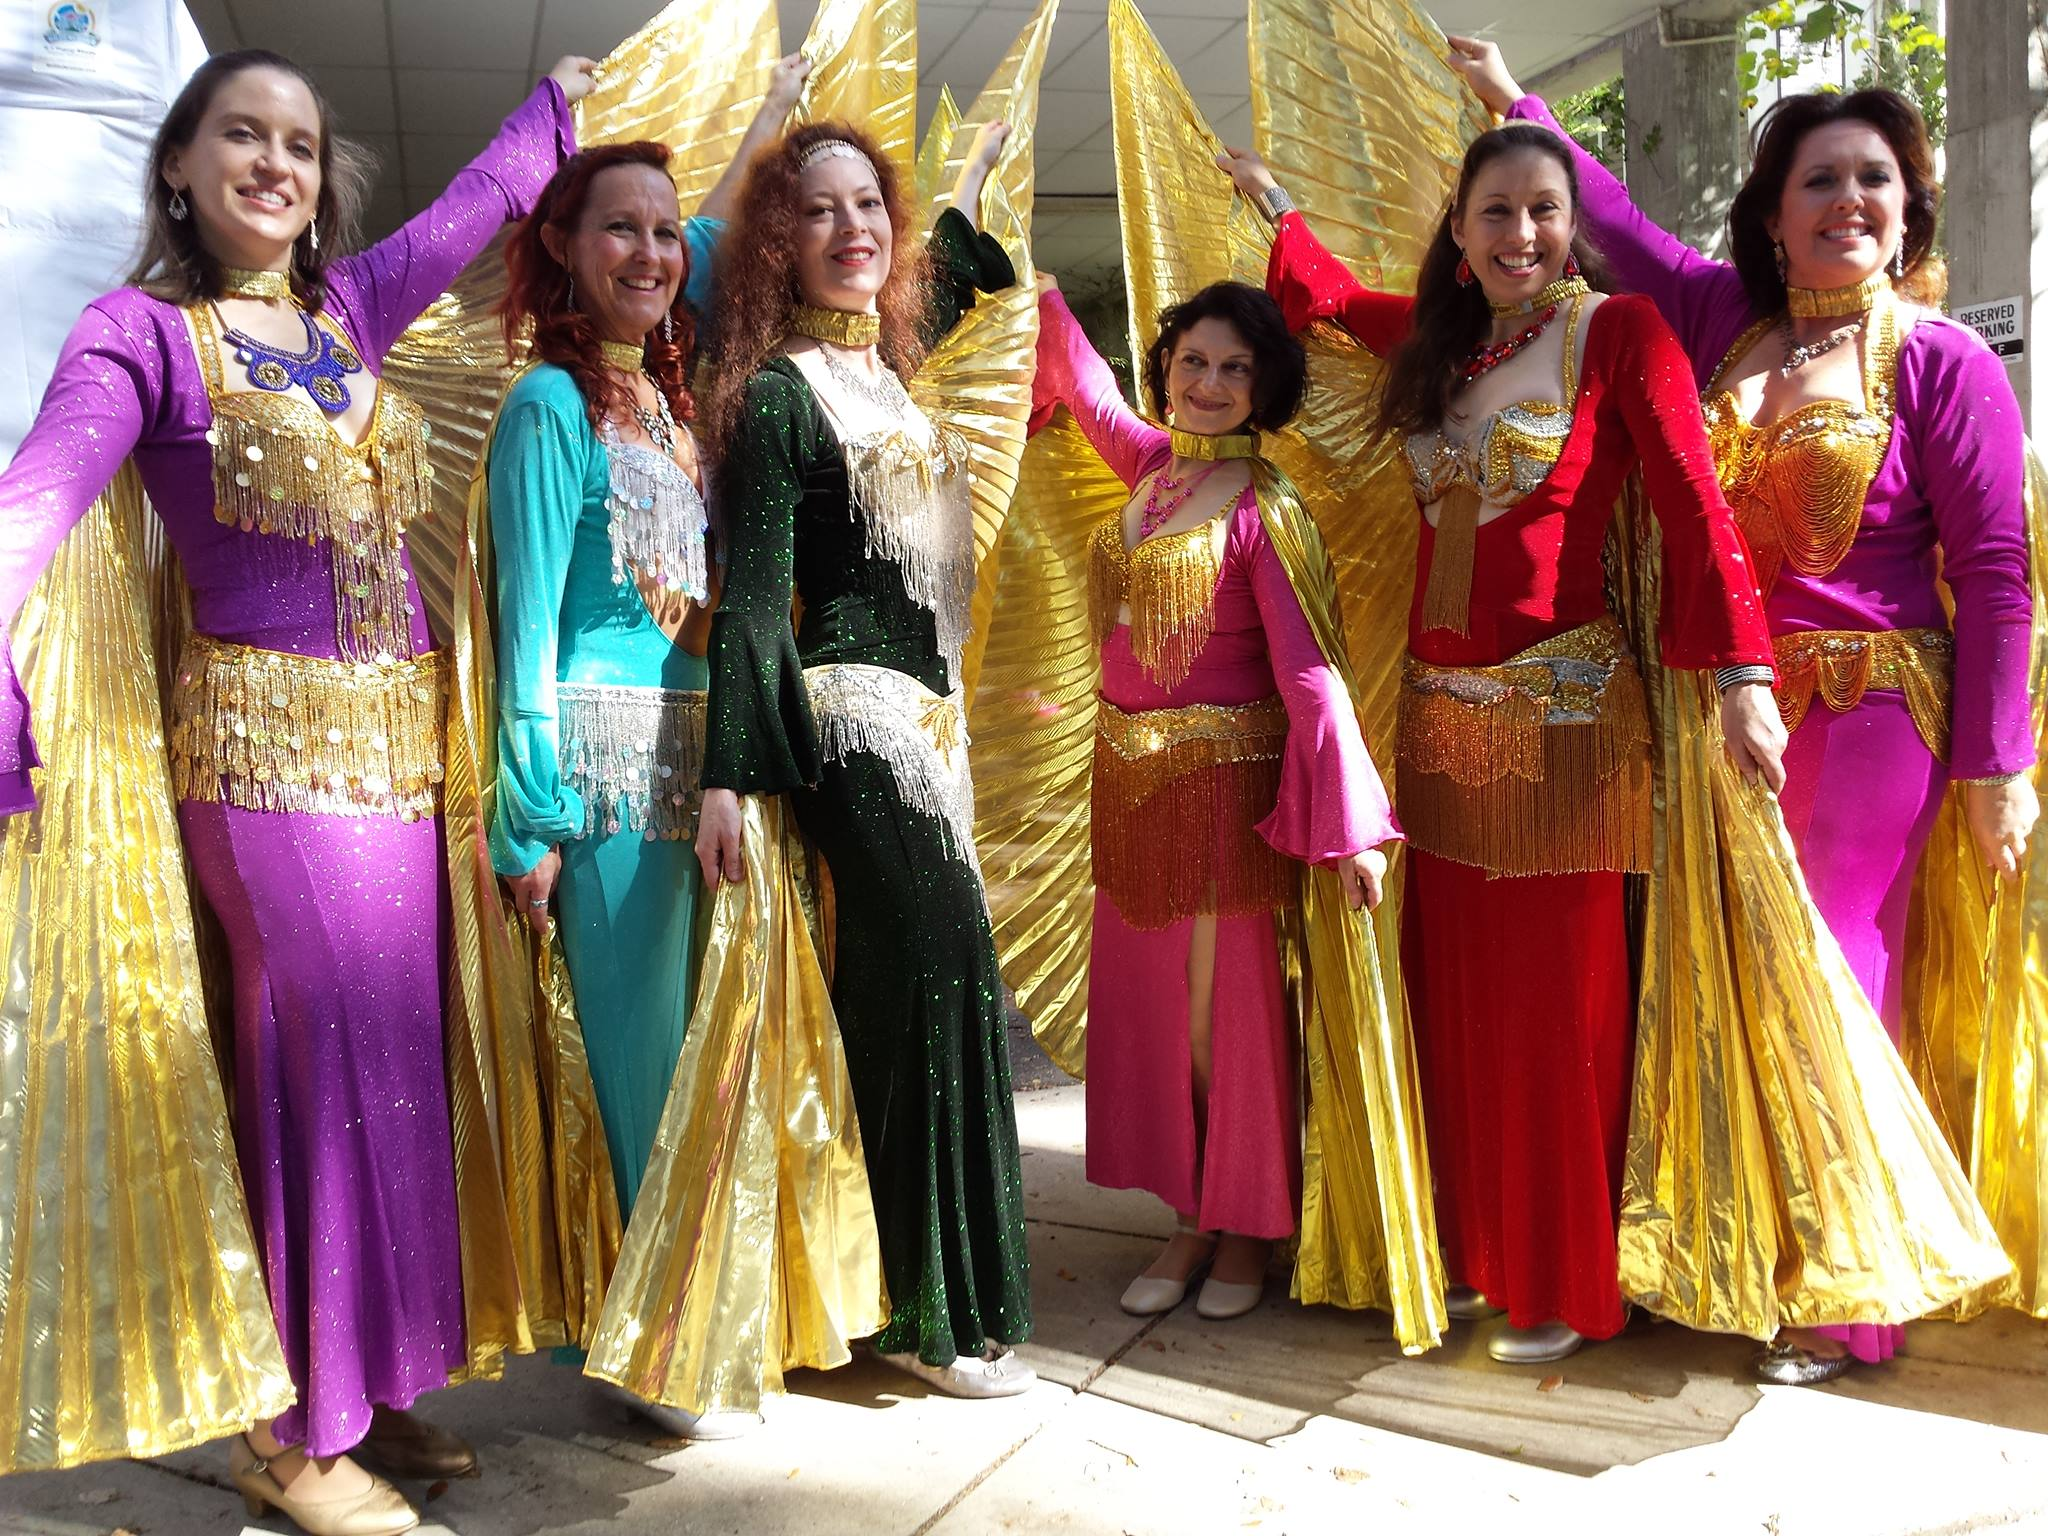 Performers of a traditional Mid-Eastern dance